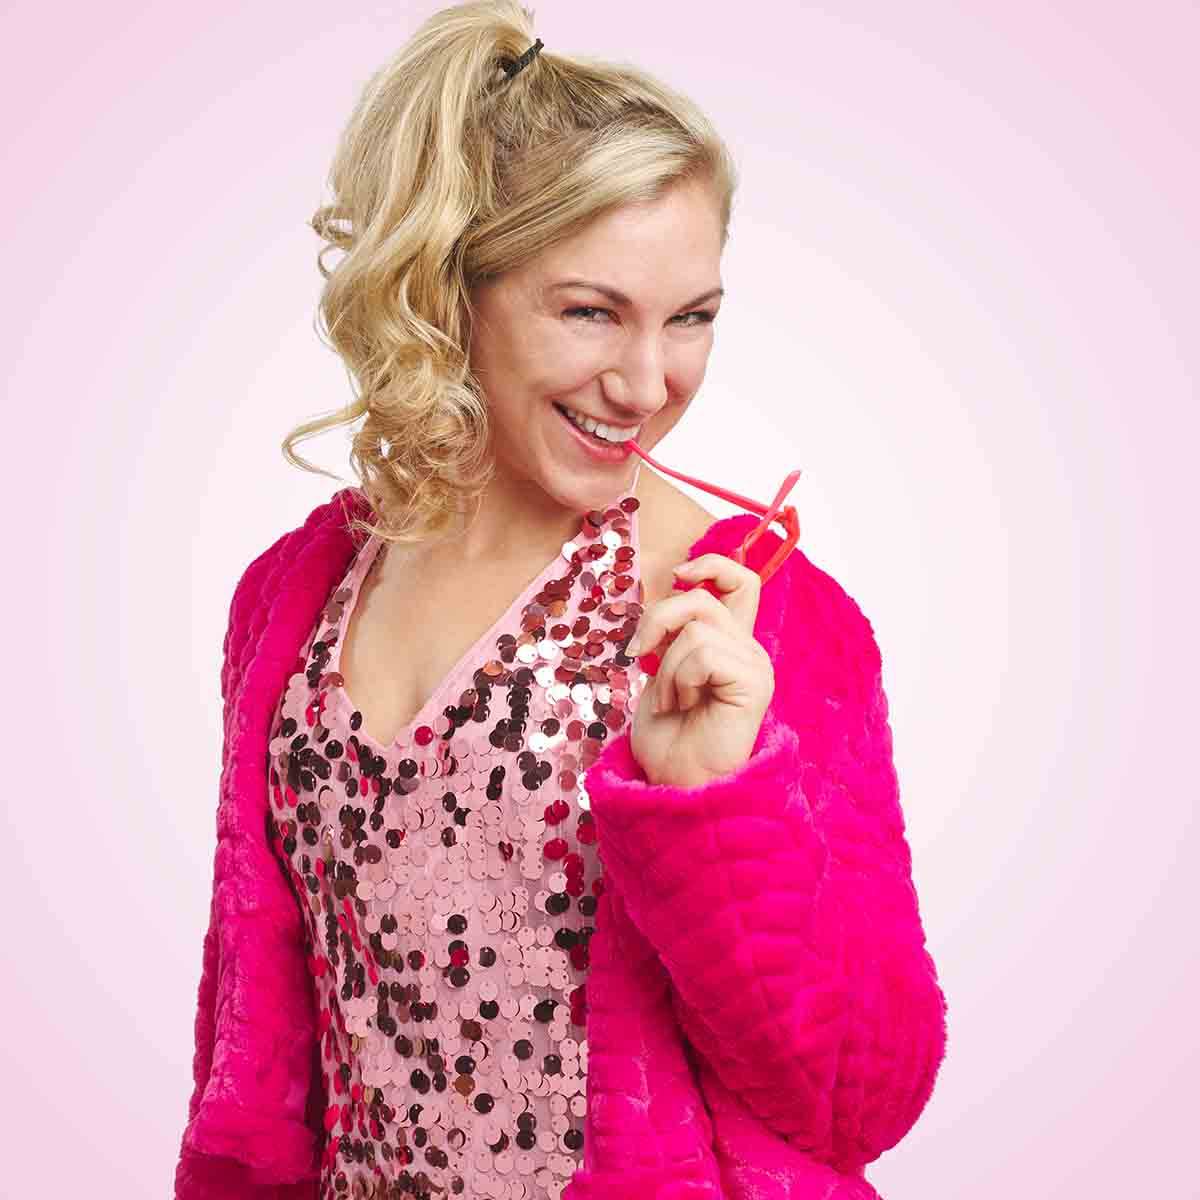 Character portrait of Amanda Casale as Elle Woods